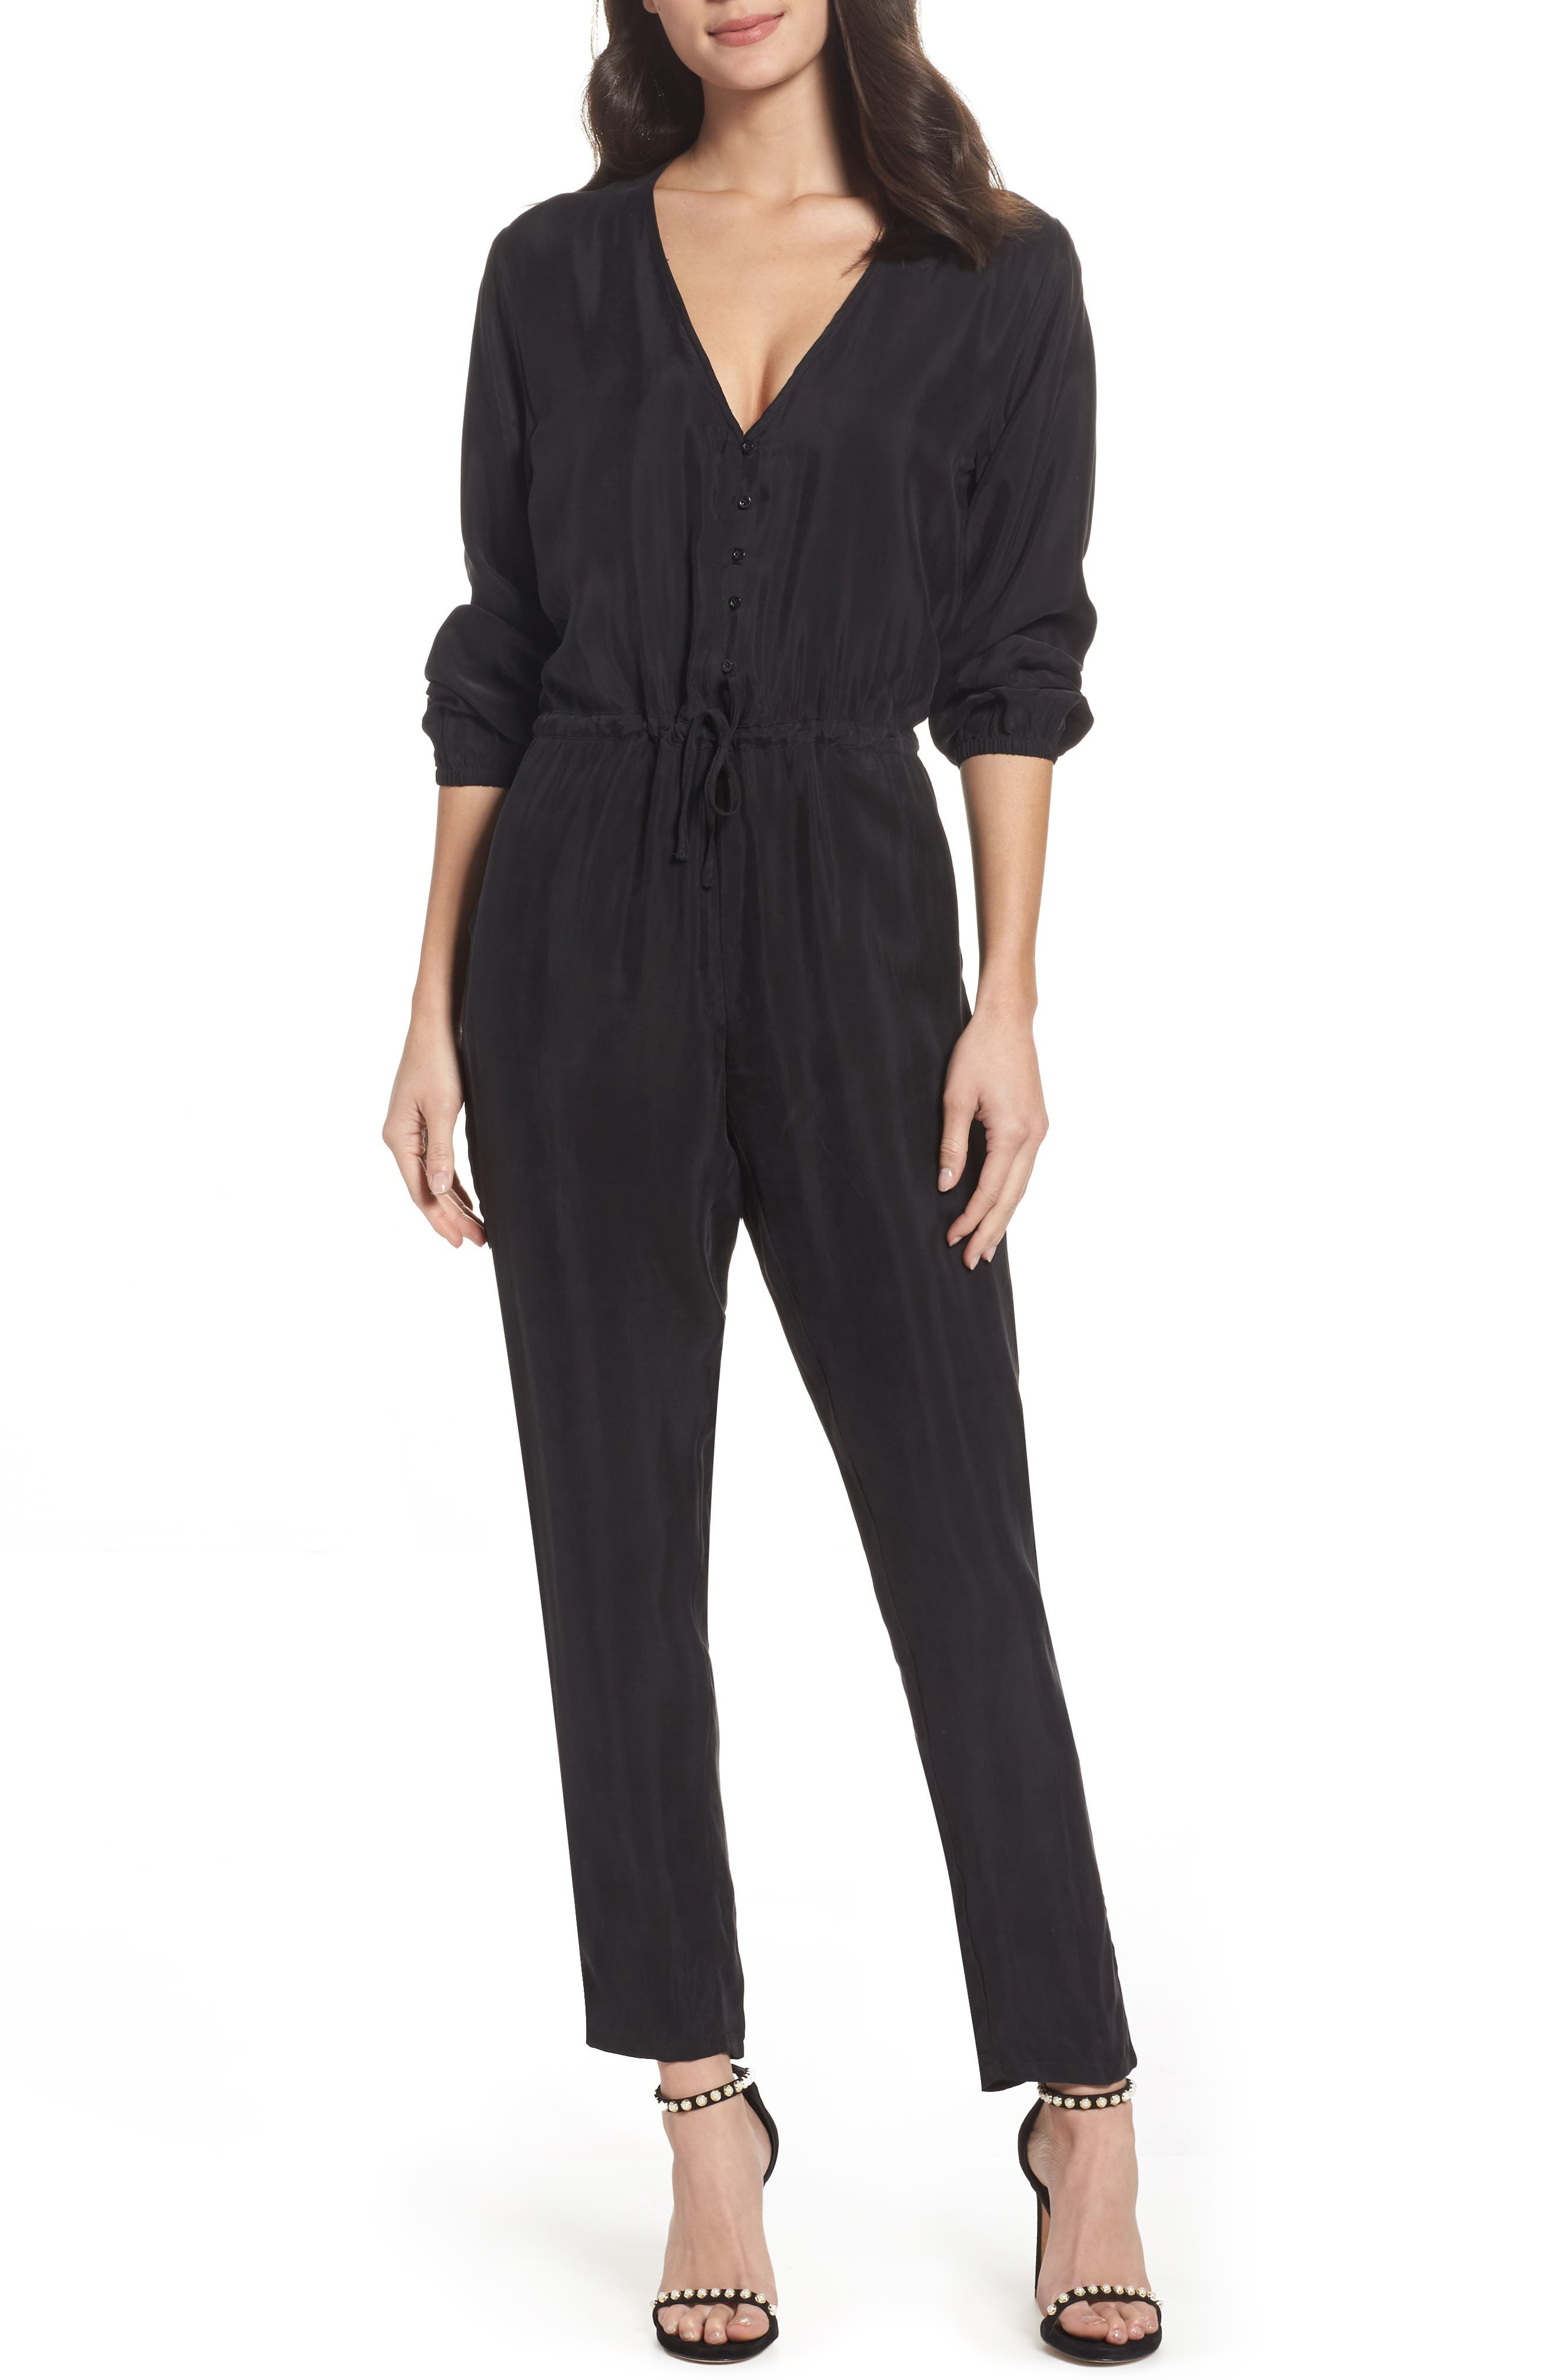 Elizabeth Jumpsuit,                             Main thumbnail 1, color,                             Black